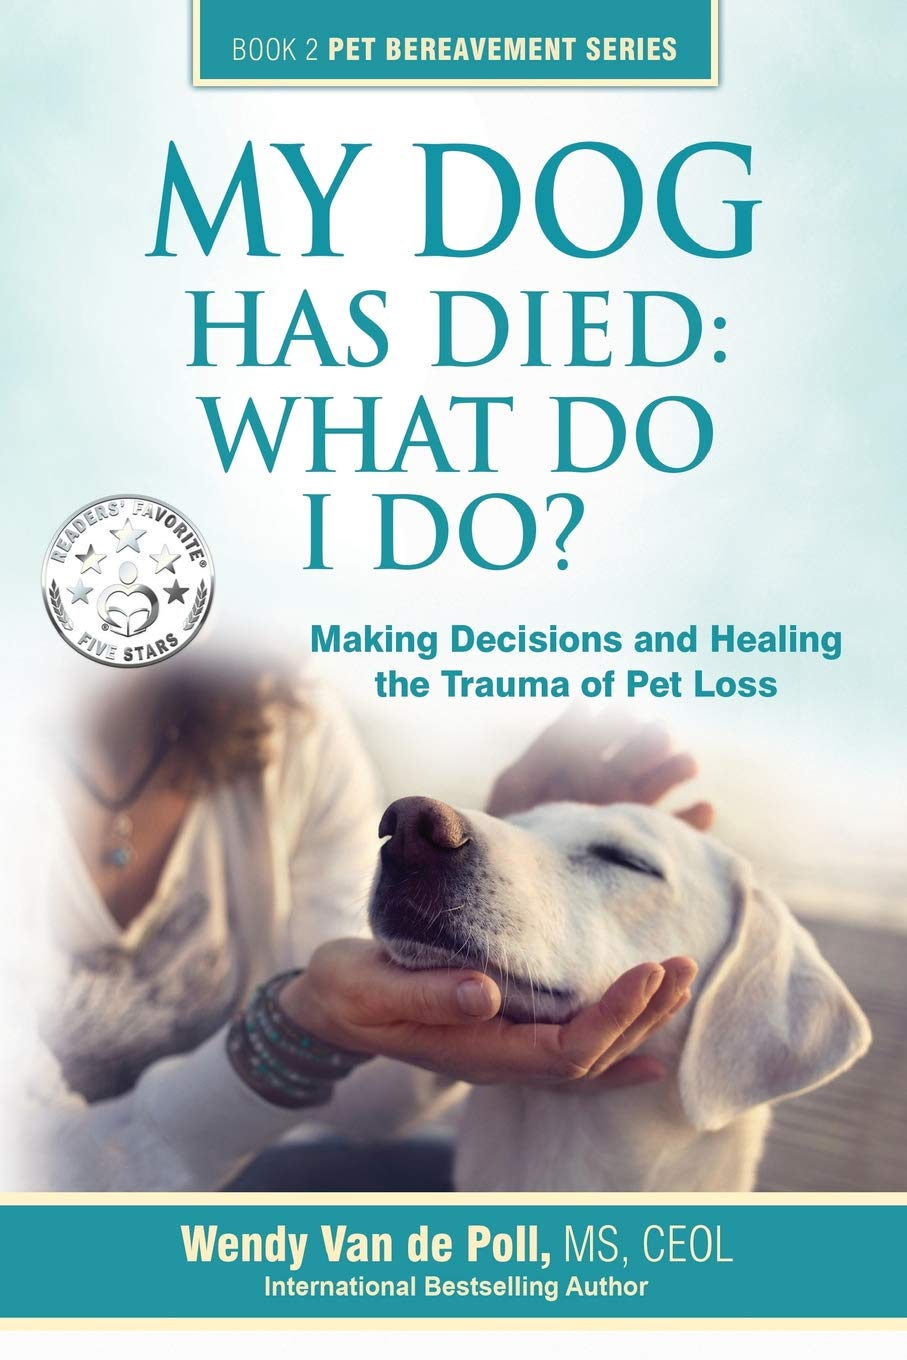 My Dog Has Died: What Do I Do?: Making Decisions and Healing the Trauma of Pet  Loss (Book 2 Pet Bereavement Series): Wendy Van de Poll: 9780997375619: ...